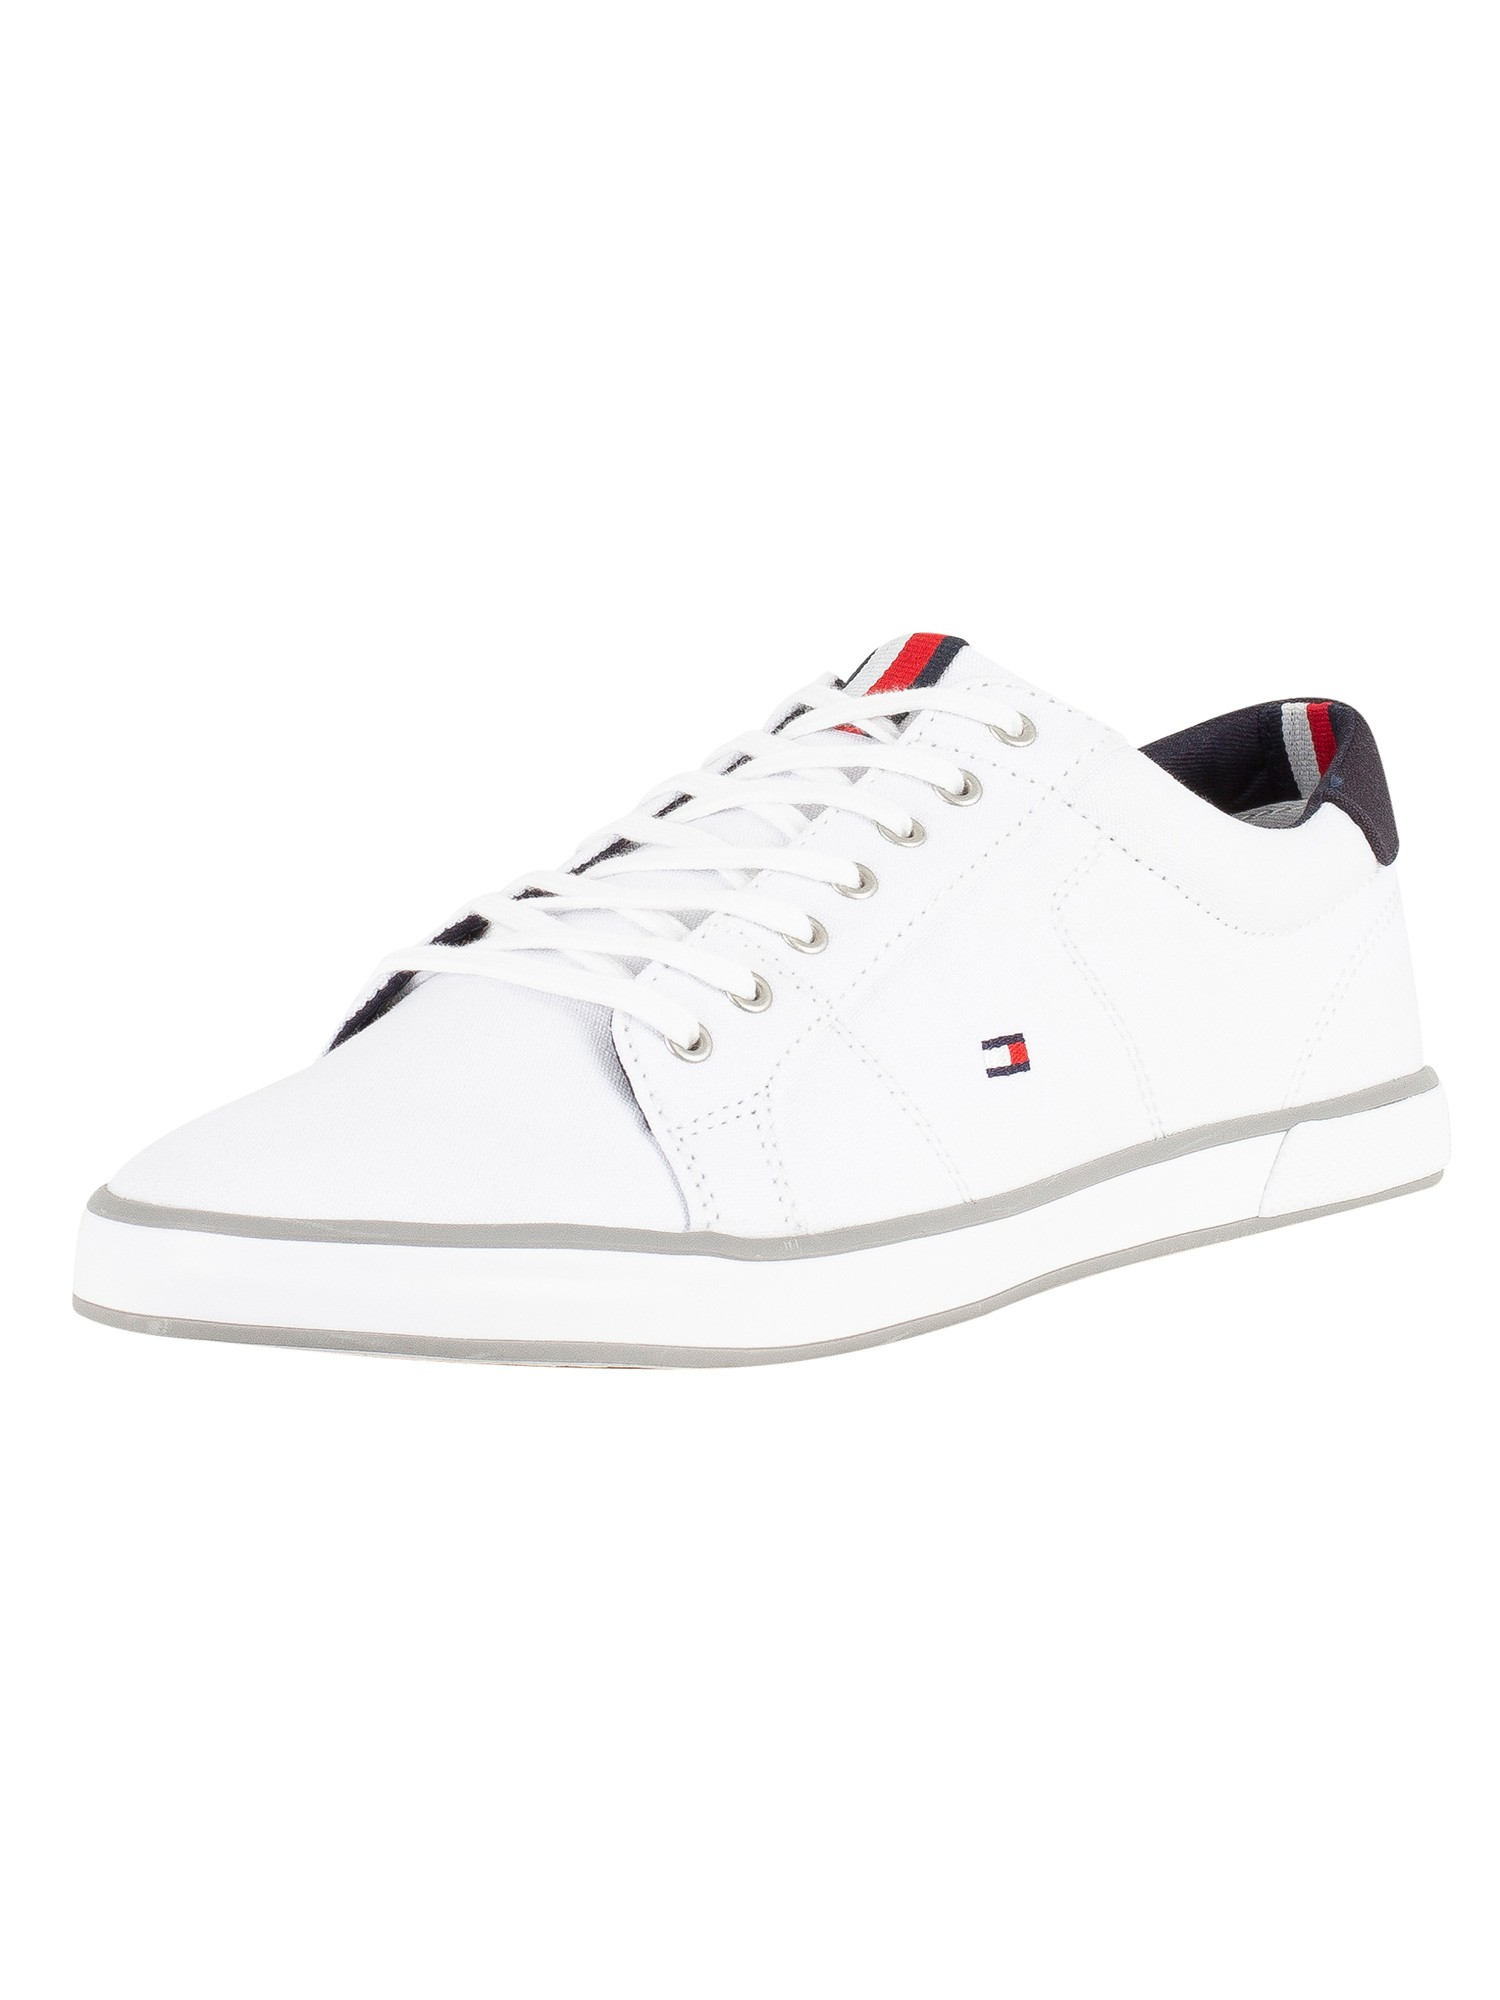 Details about Tommy Hilfiger Men's Flag Trainers, White